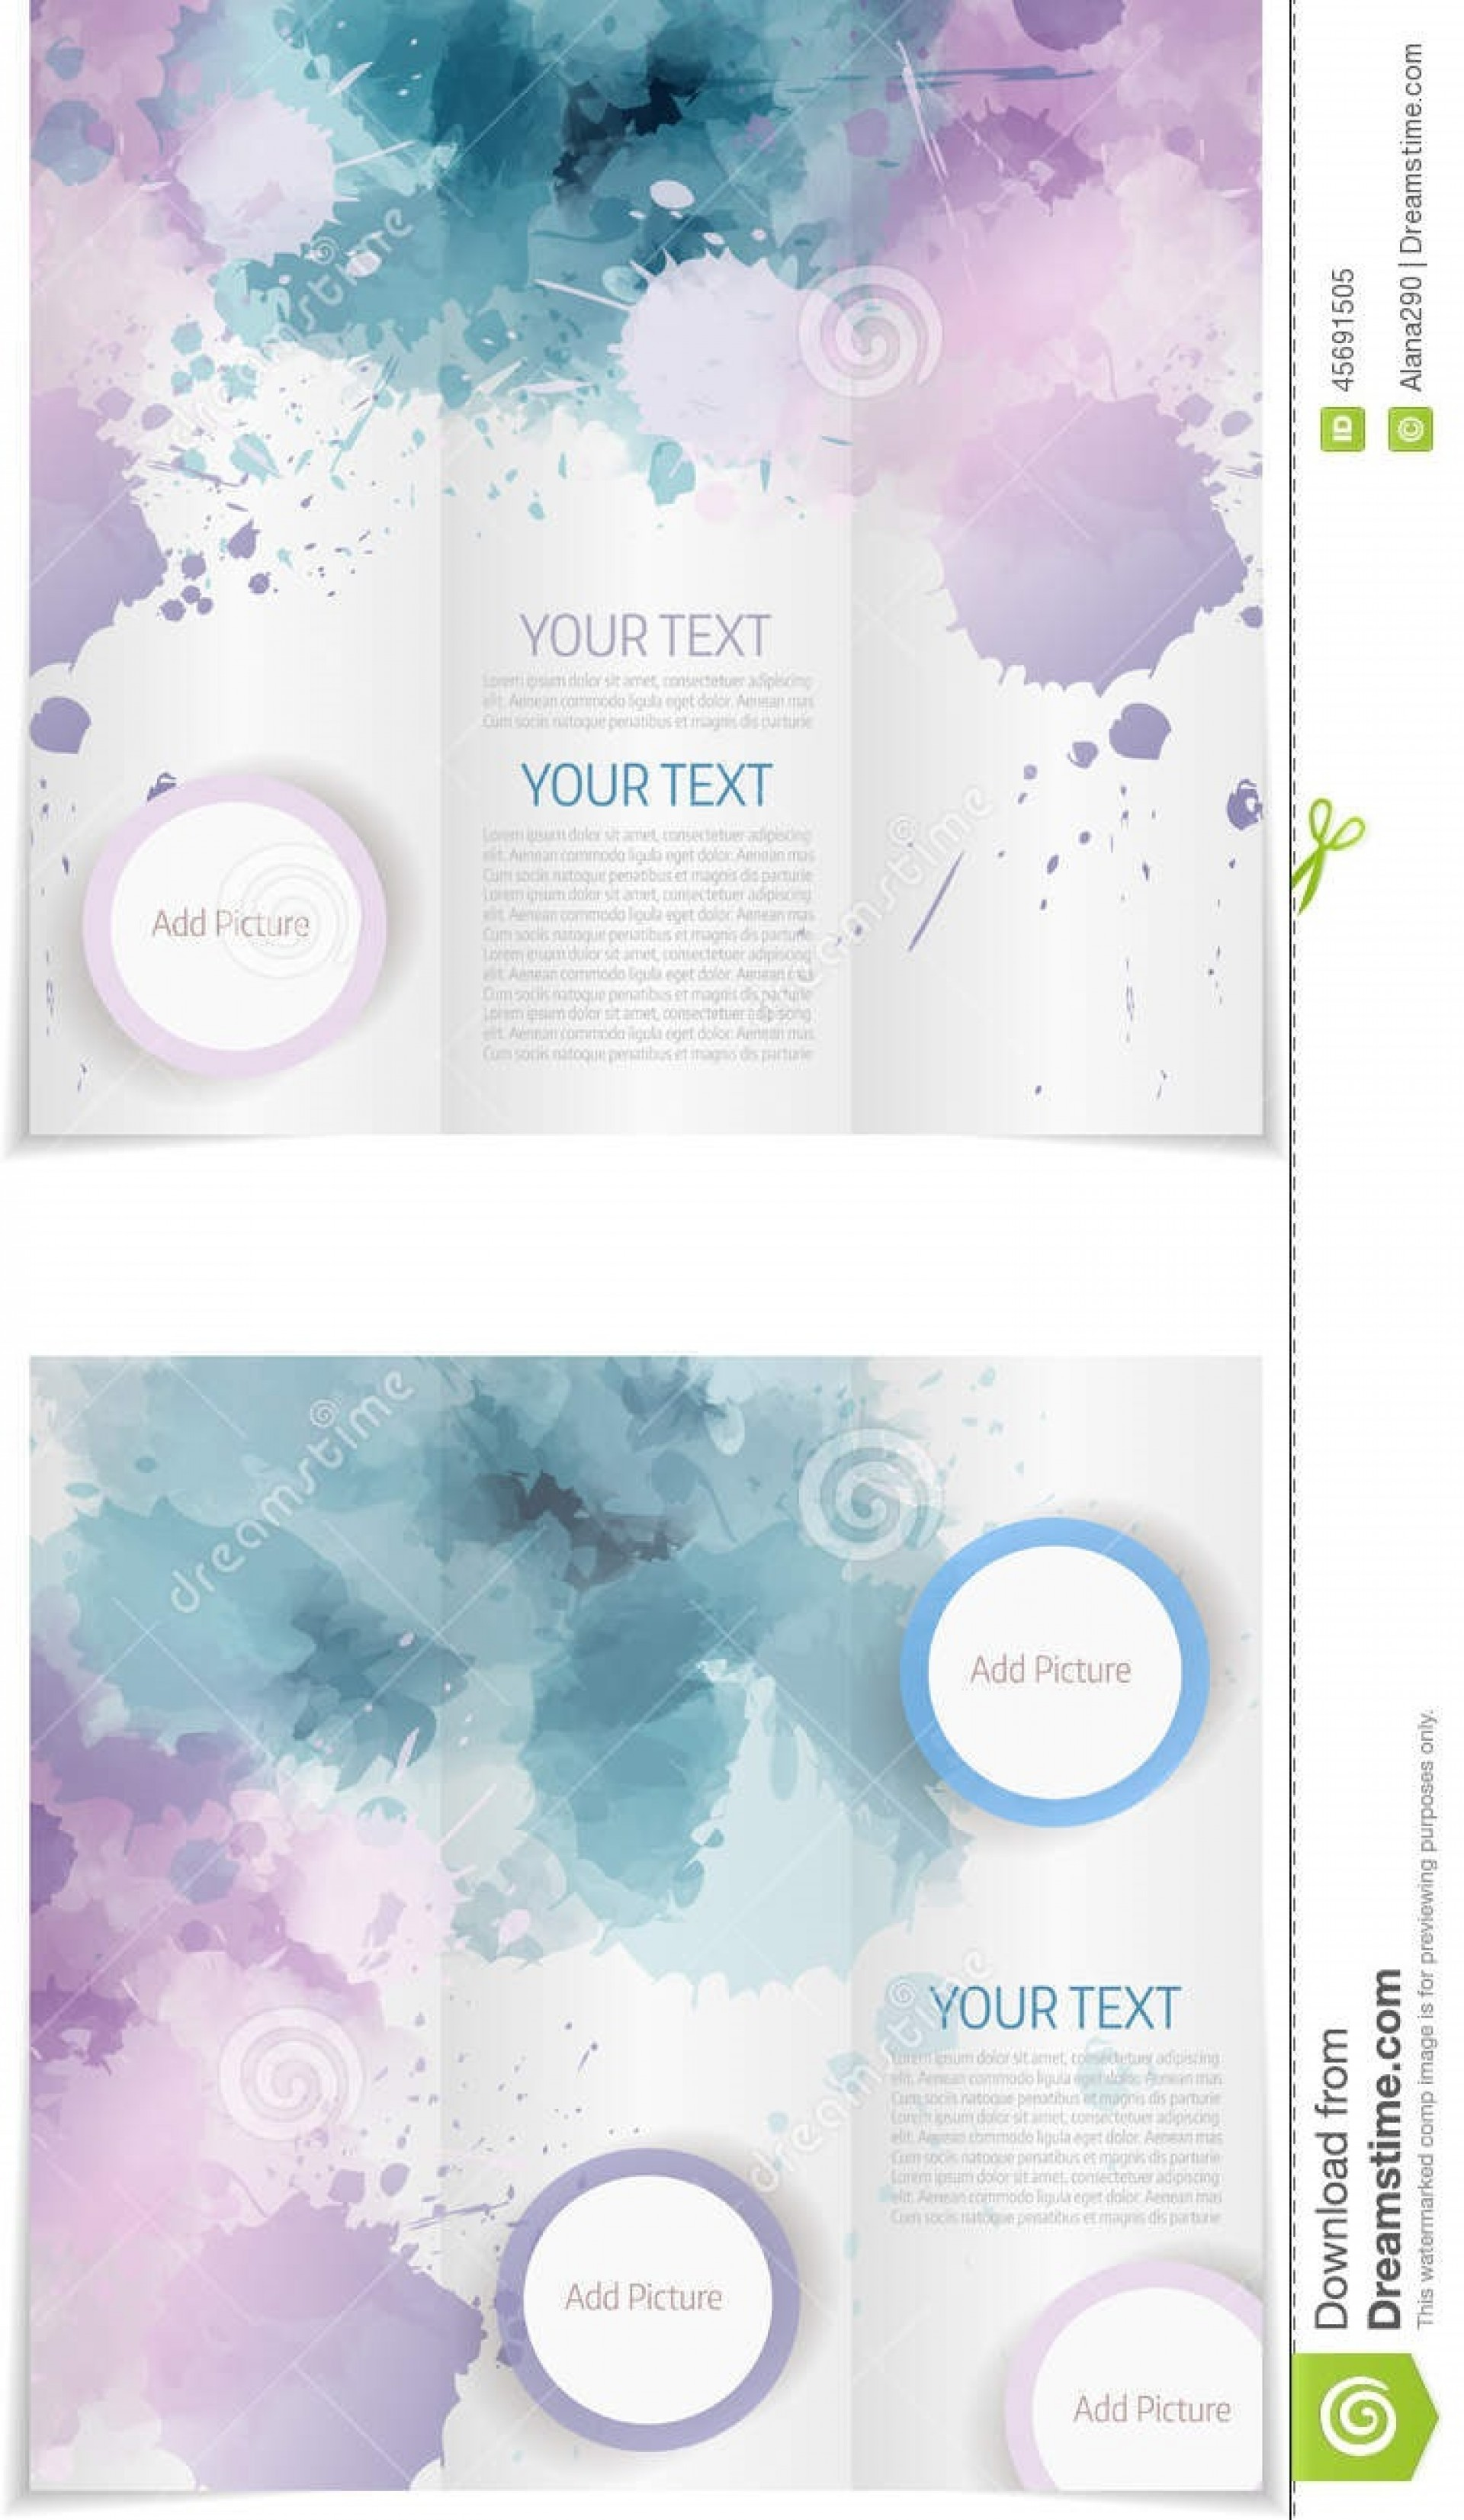 009 Stupendou Publisher Brochure Template Free Inspiration  Microsoft Download Tri Fold1920